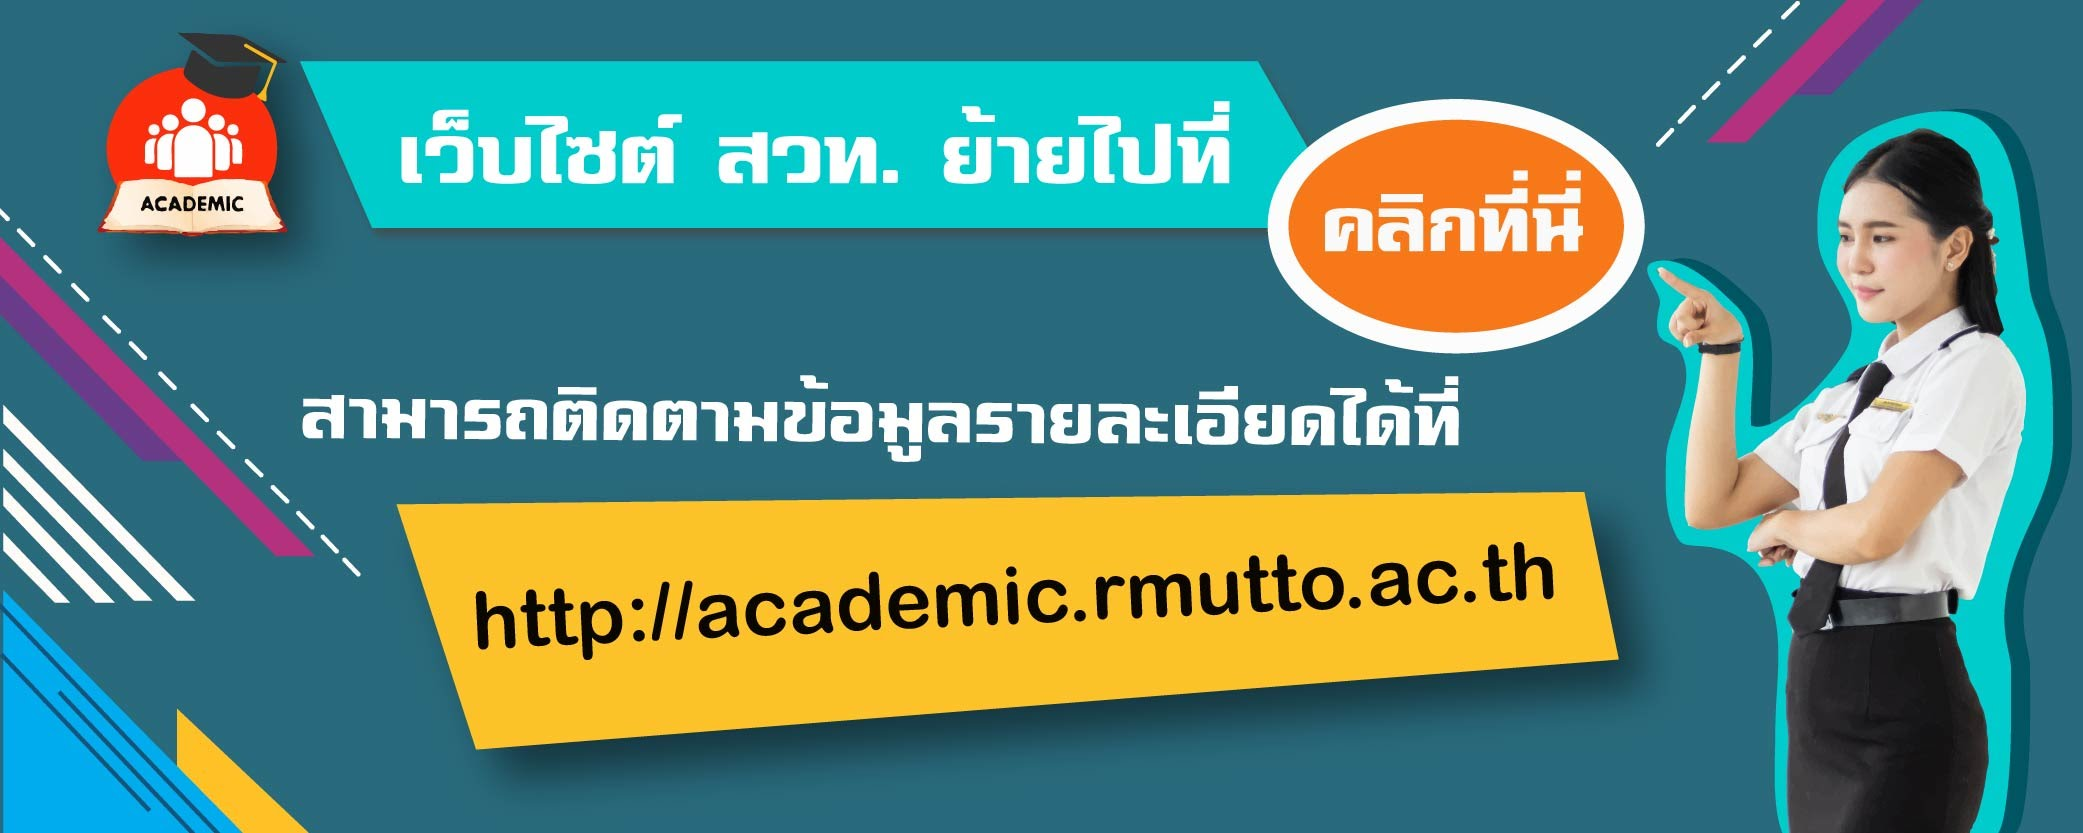 http://academic.rmutto.ac.th/